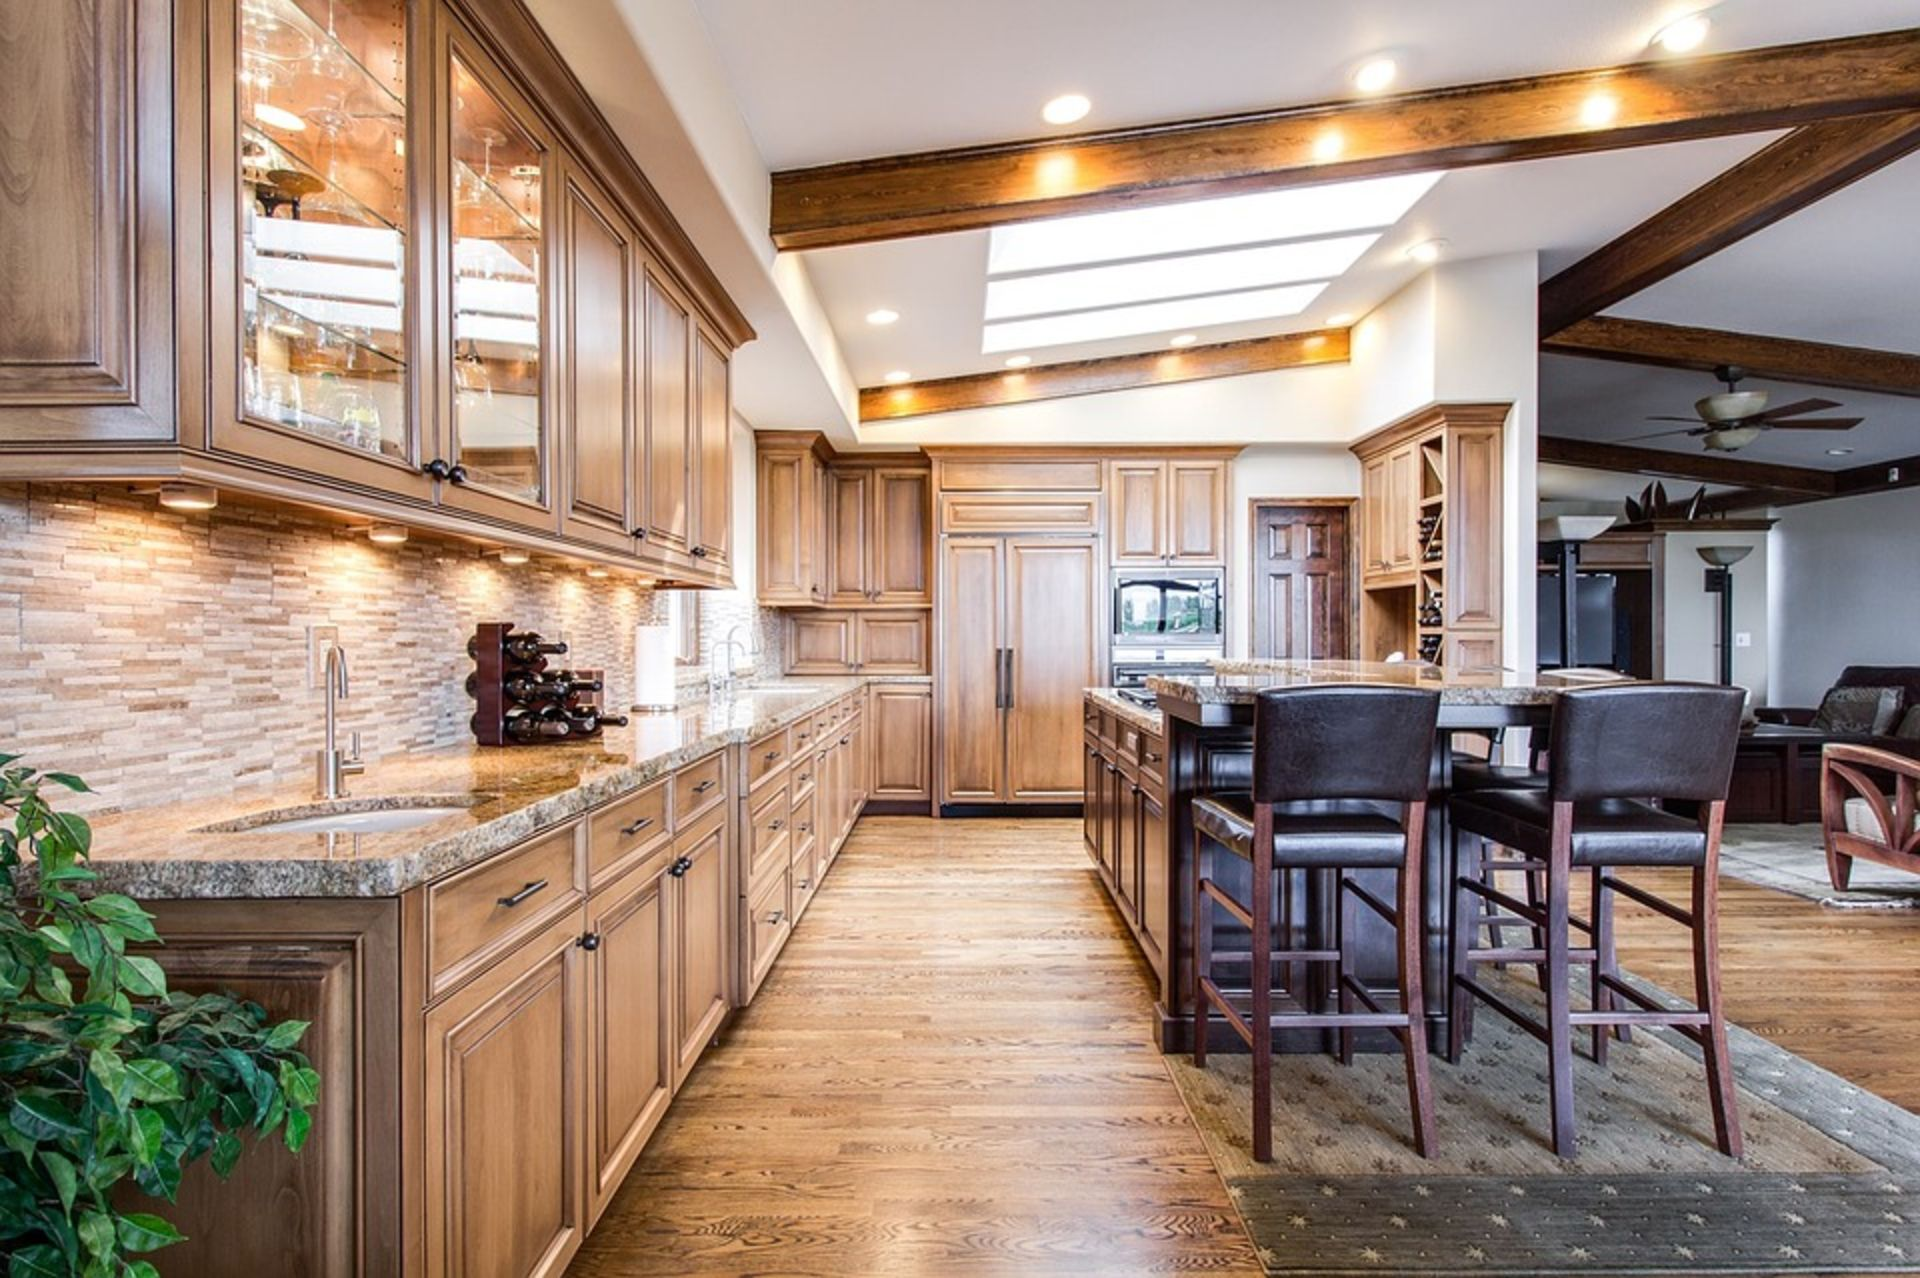 Top Kitchen Renovation Trend for 2019